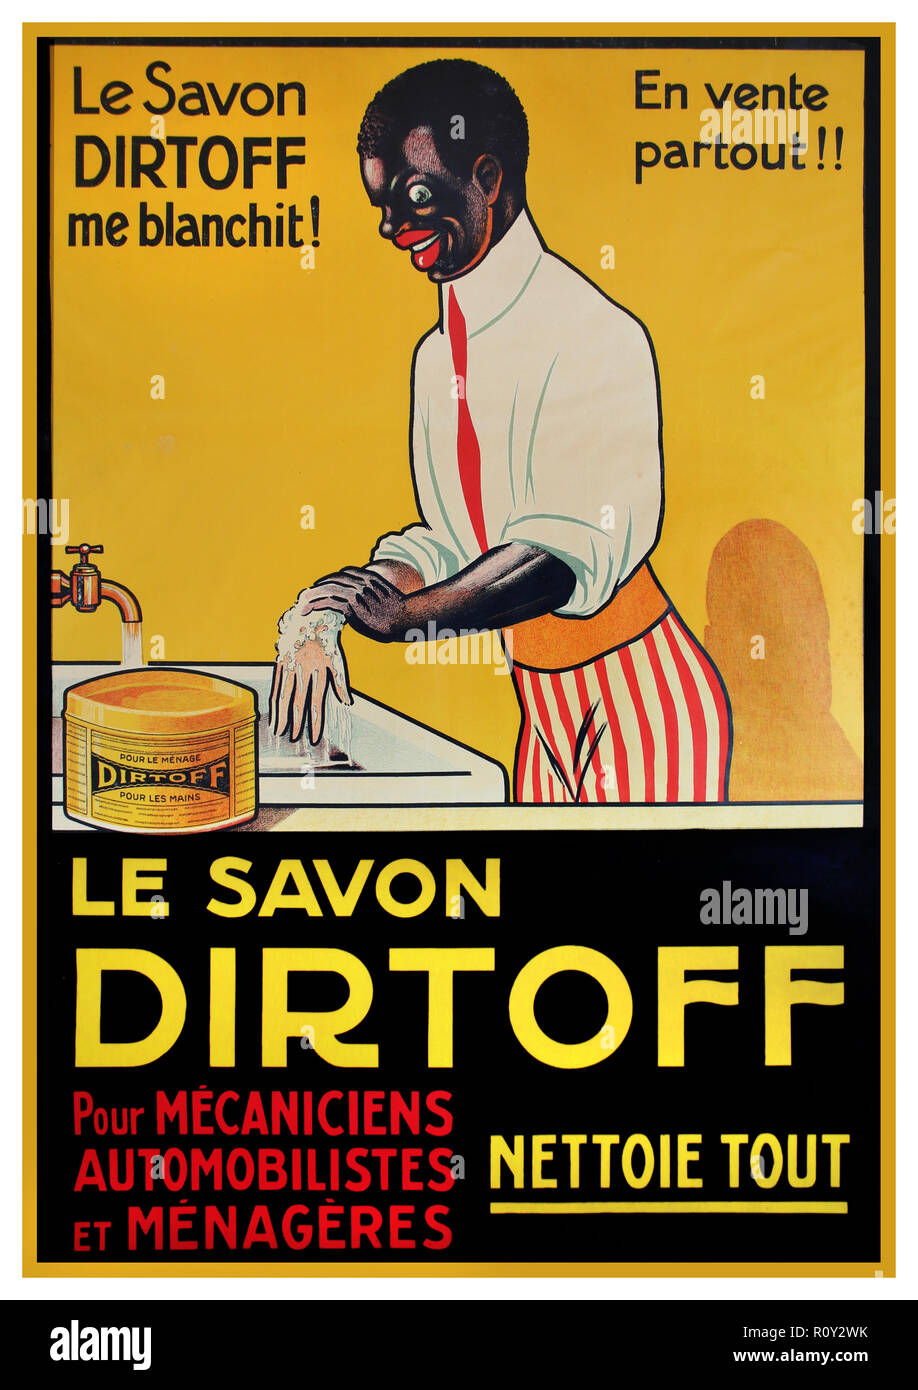 """Vintage French Advertisement Poster;  Poster features a dark-skinned African male, washing his hands with the DirtOff product. His hands have  turned white  """"Le Savon Dirtoff me blanchit!""""  """"The Dirtoff Soap Whitens Me!"""". The soap was  designed for """"pour mecaniciens, automobilistes, et menageres""""  """"for mechanics , drivers and housewives"""".  African people losing skin pigmentation as a result of the cleaning process, were common in the late 19th century. """"En vente partout!""""  """"Sold Everywhere!"""" and """"Nettoi Tout"""" means """"Cleans"""". Very Non Politically Correct 19th Century poster - Stock Image"""